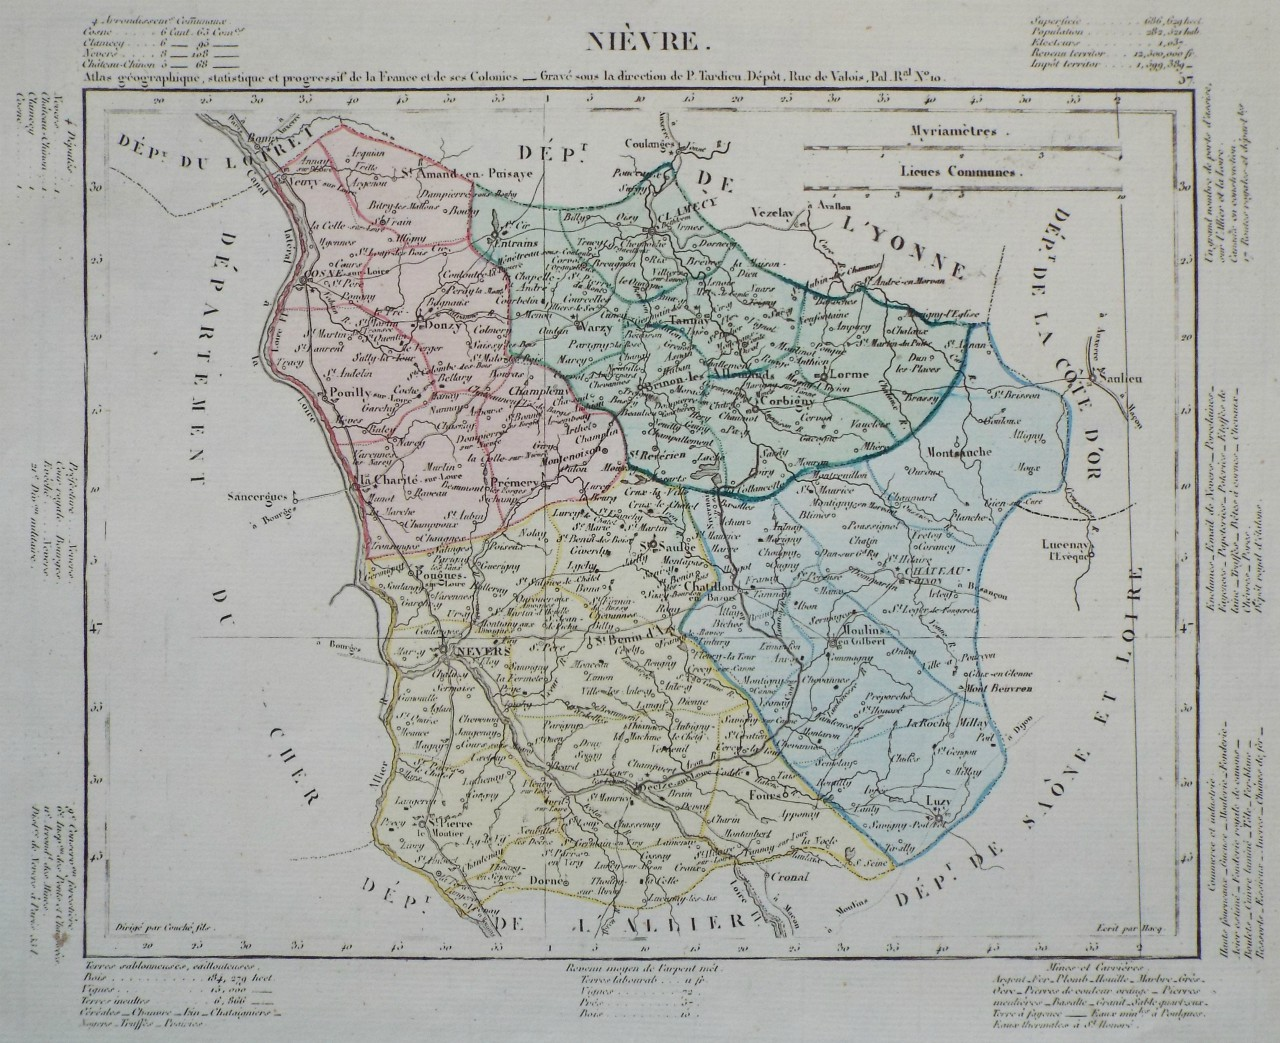 Map of Nievre